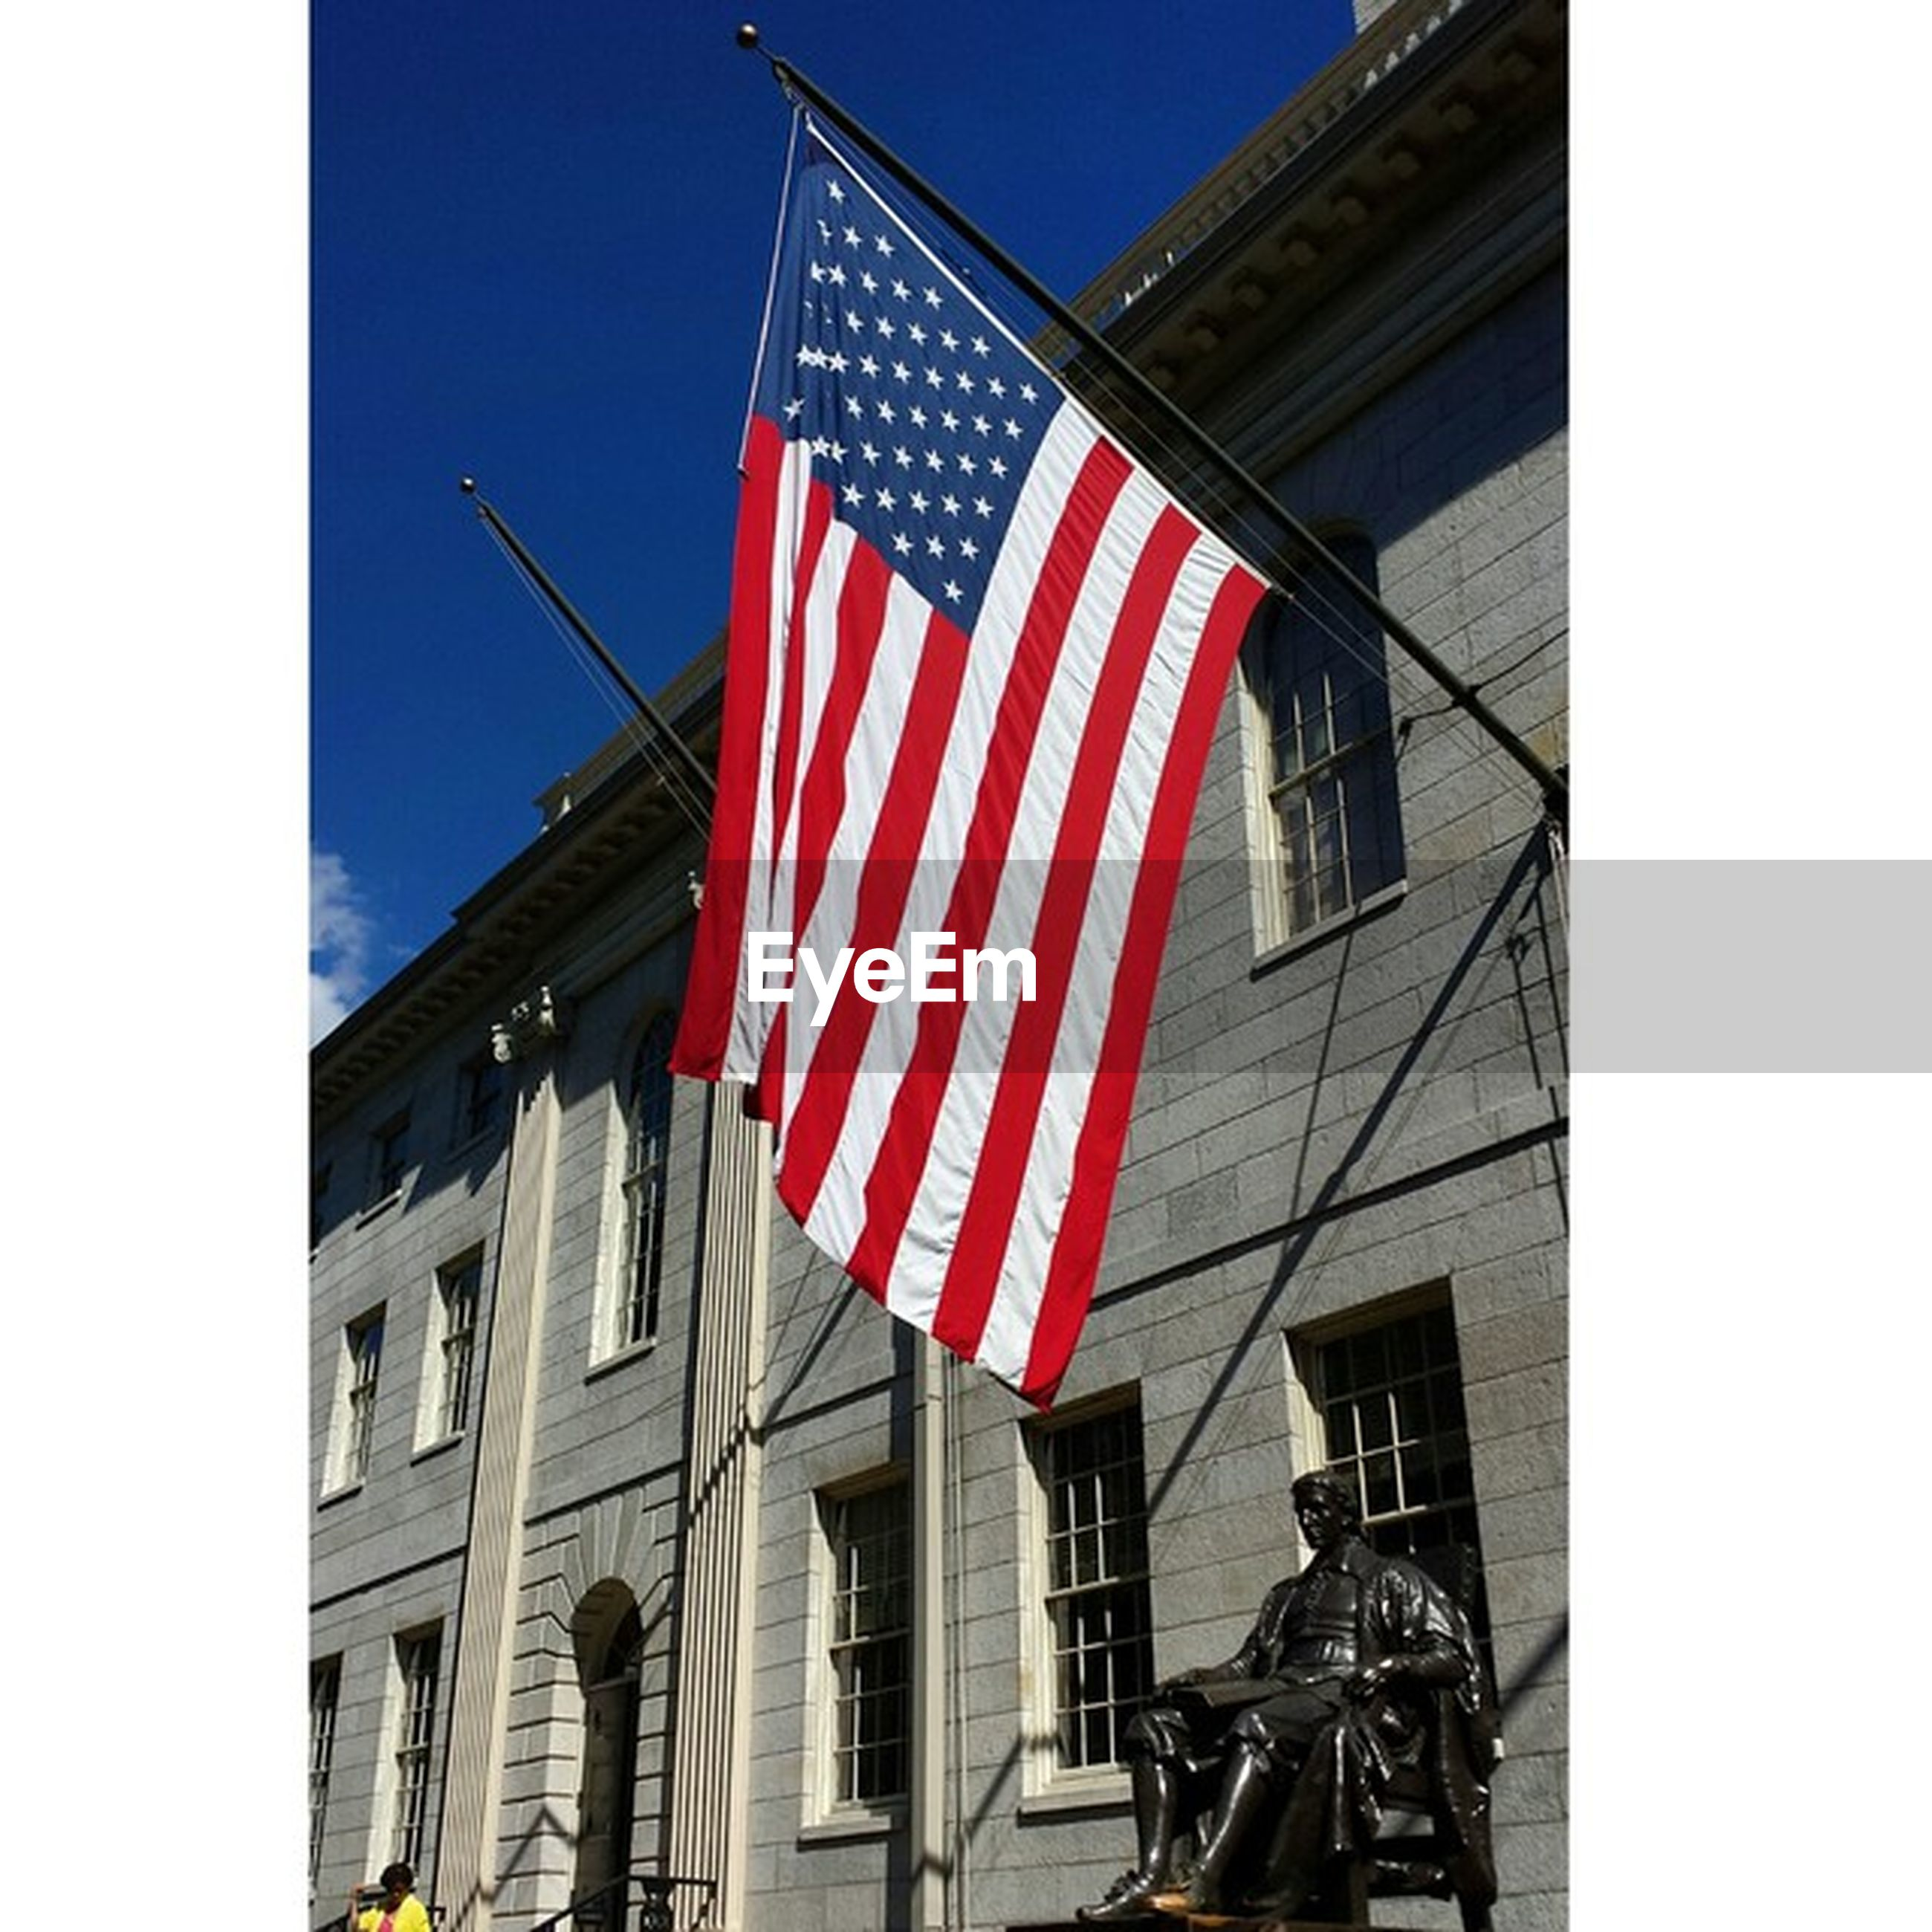 flag, patriotism, national flag, identity, american flag, building exterior, architecture, built structure, low angle view, culture, red, clear sky, city, wind, striped, pride, sky, pole, day, outdoors